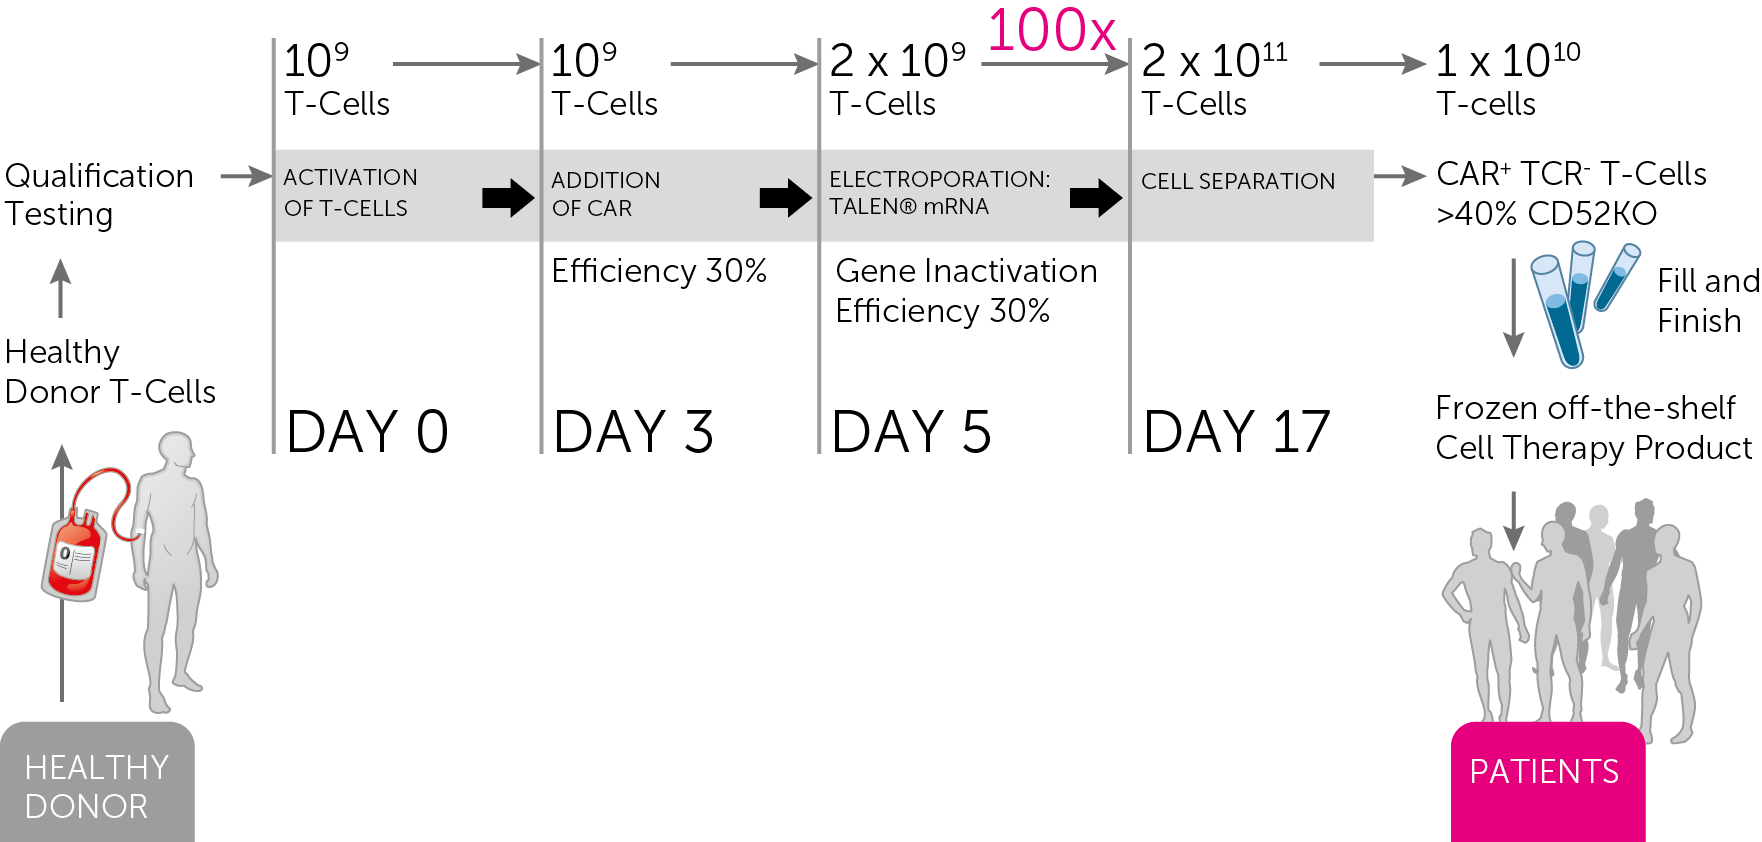 The UCART Manufacturing Process (Source: Cellectis)